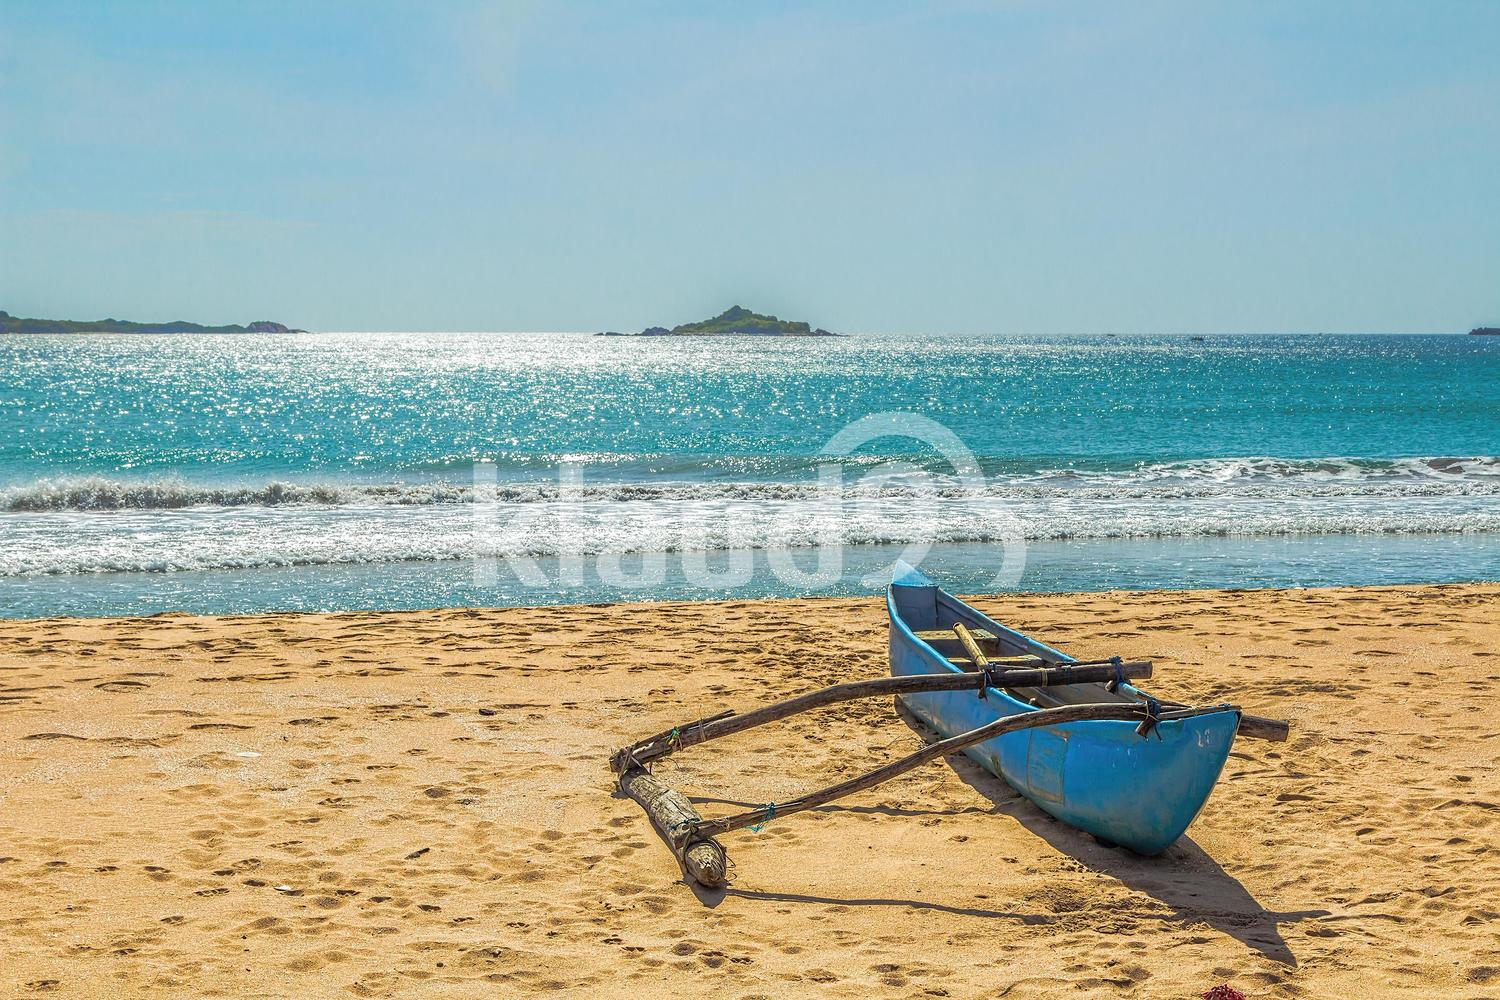 Aboriginal boat on the sandy shores of the Indian Ocean. Sri Lanka